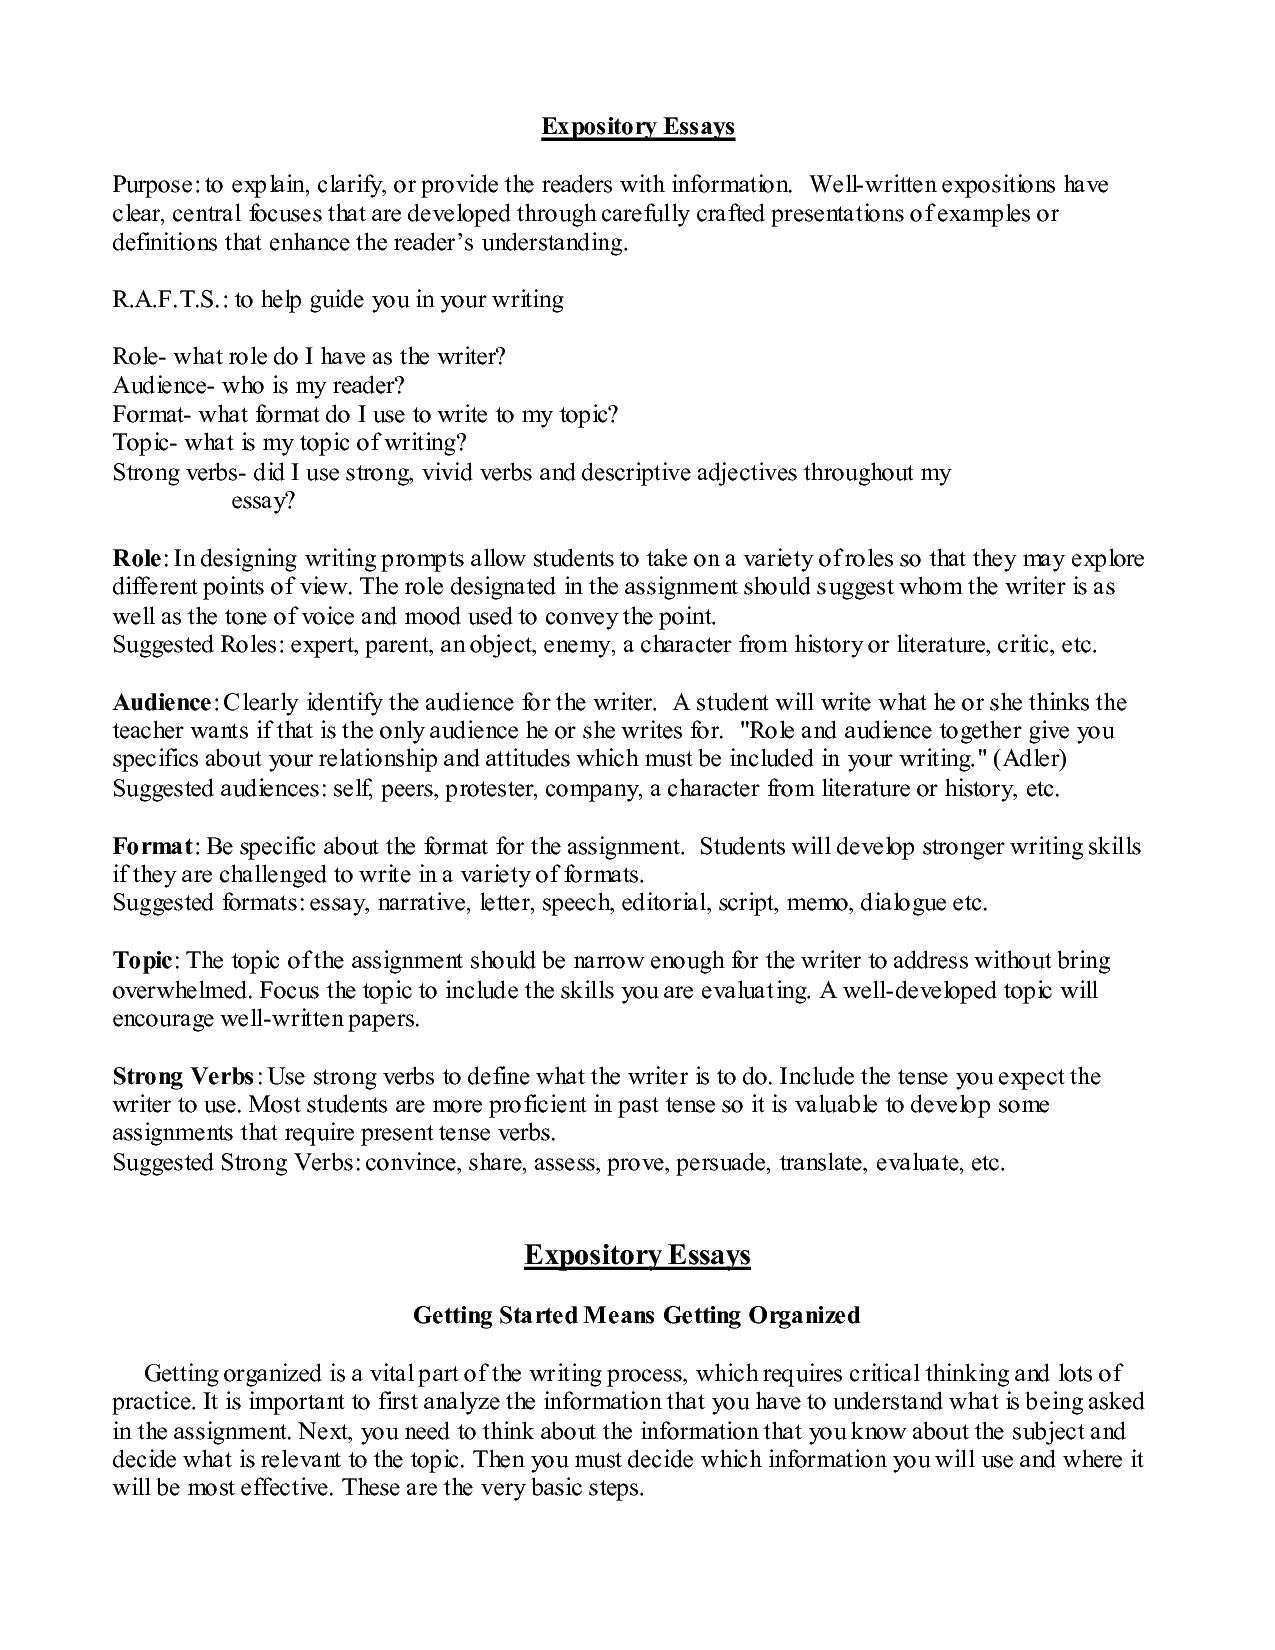 thesis statement for expository essay An expository essay, often required in high school and college classes, allows you to explore an opinion or make an argument about a particular idea the thesis statement usually appears at the end of the introductory paragraph of your essay, making a clear declaration about the opinion you wish to.